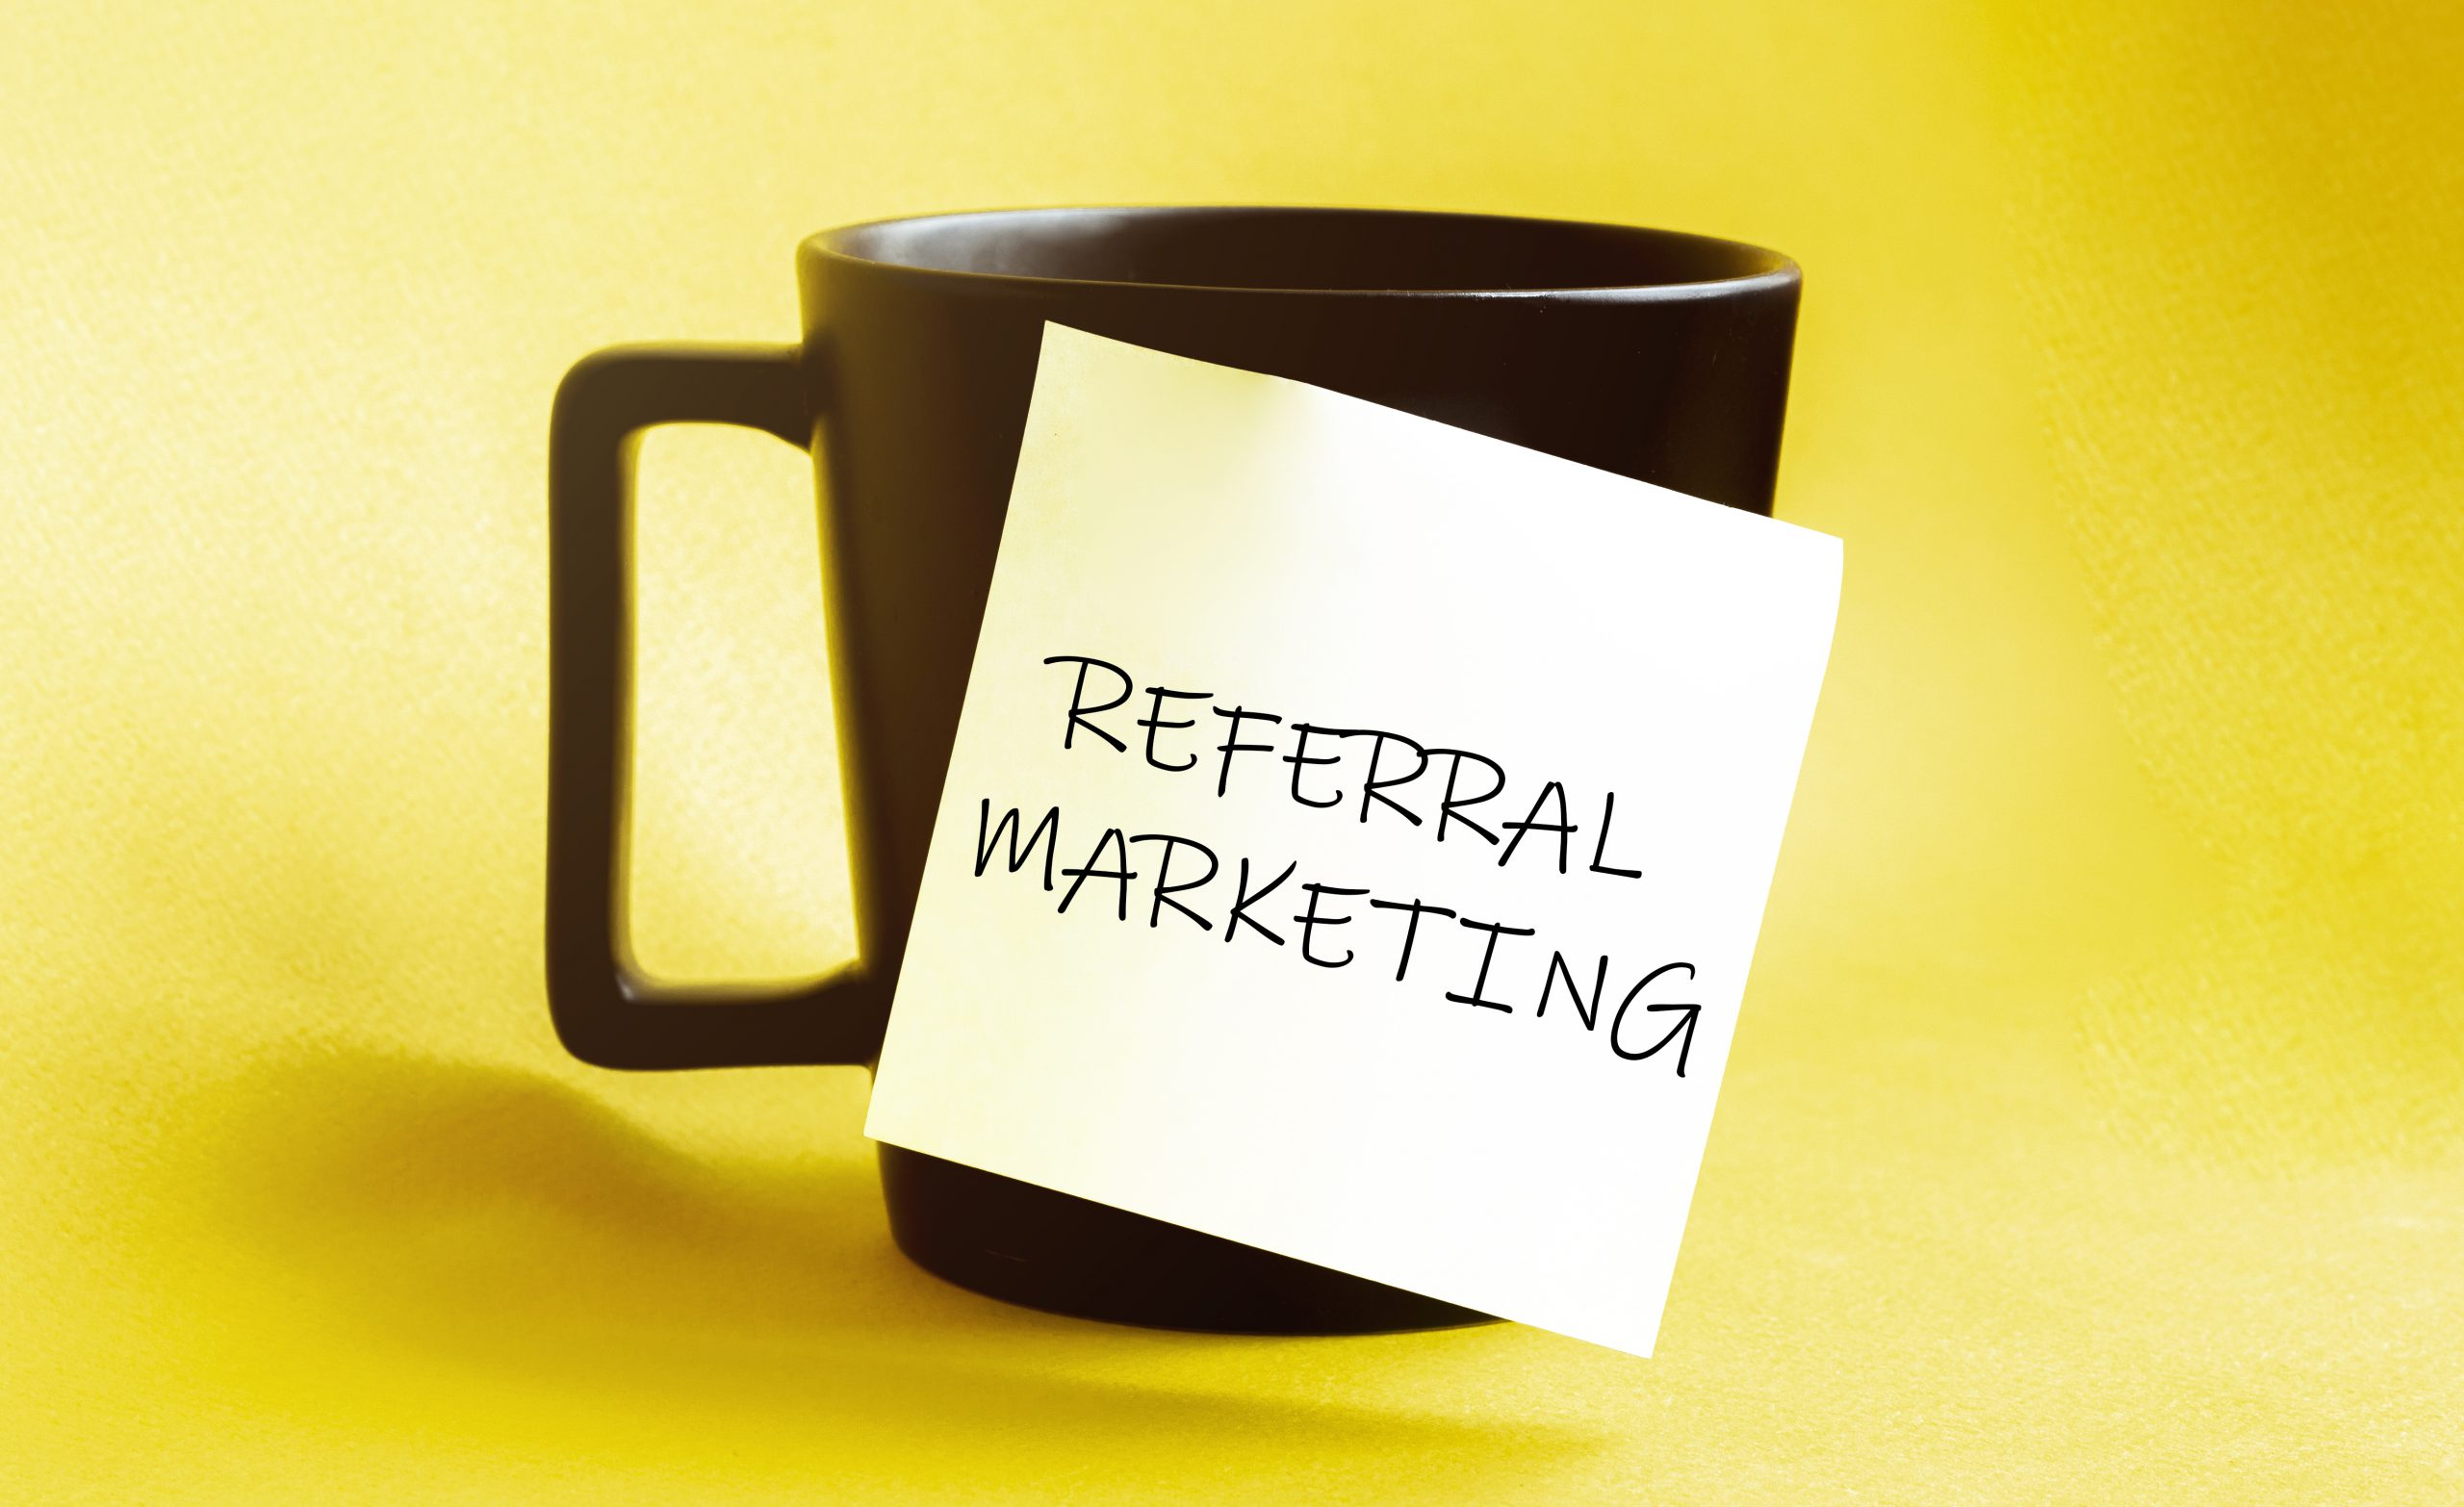 referral marketing black cup